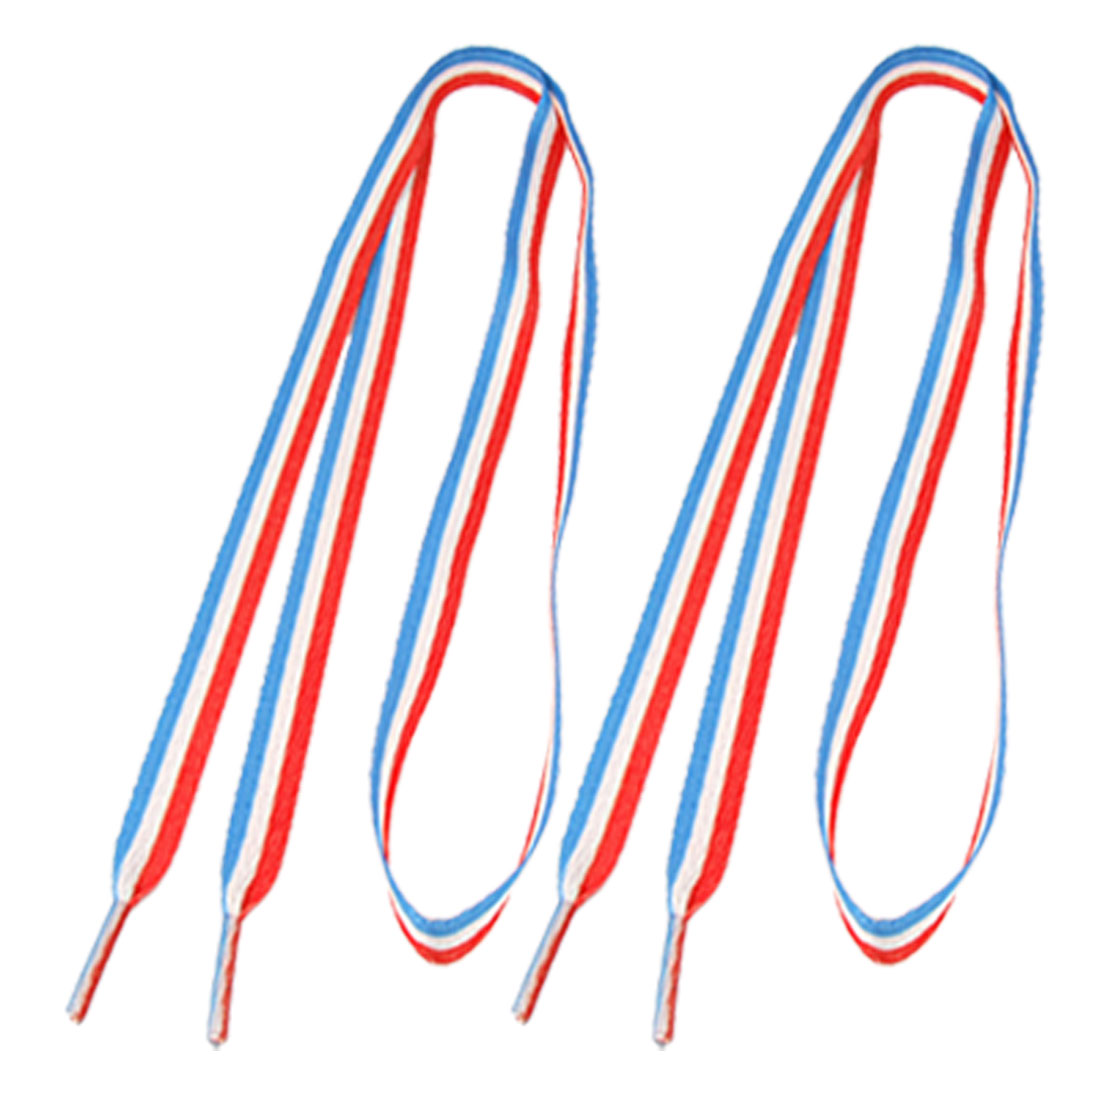 "45.3"" Length Red White Blue Striped Plastic Tip Flat Shoelace String Pair"